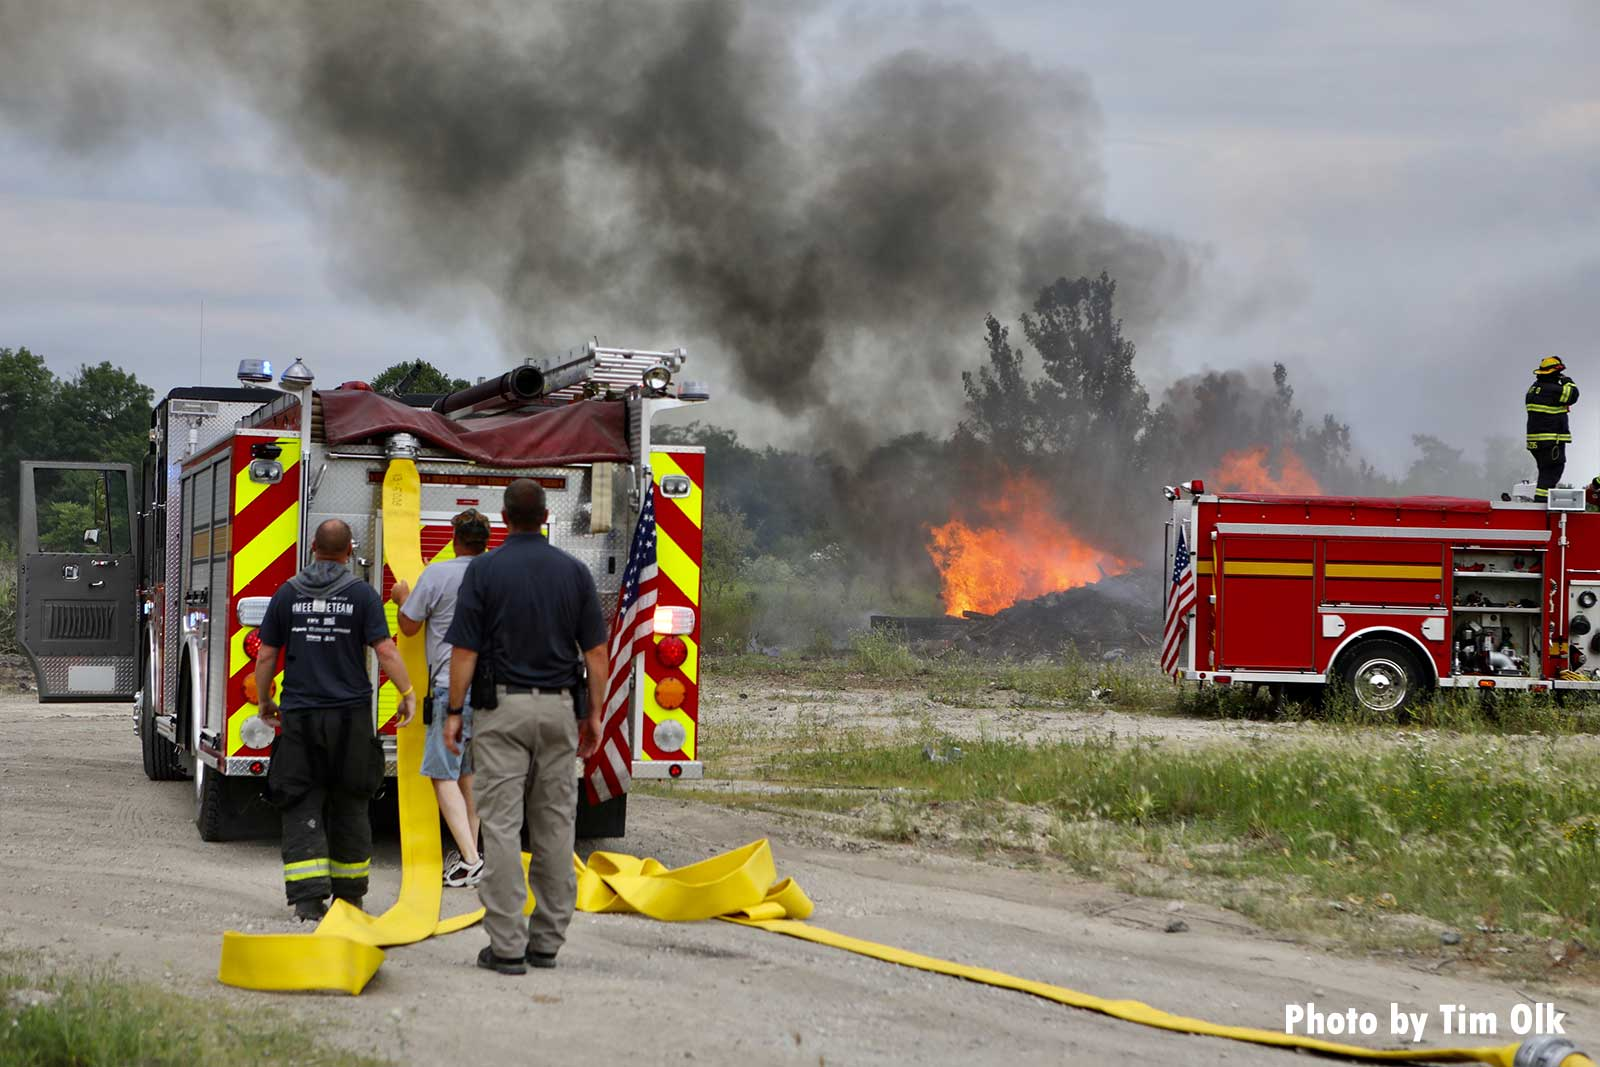 Rubbish fire burning with fire apparatus and firefighters